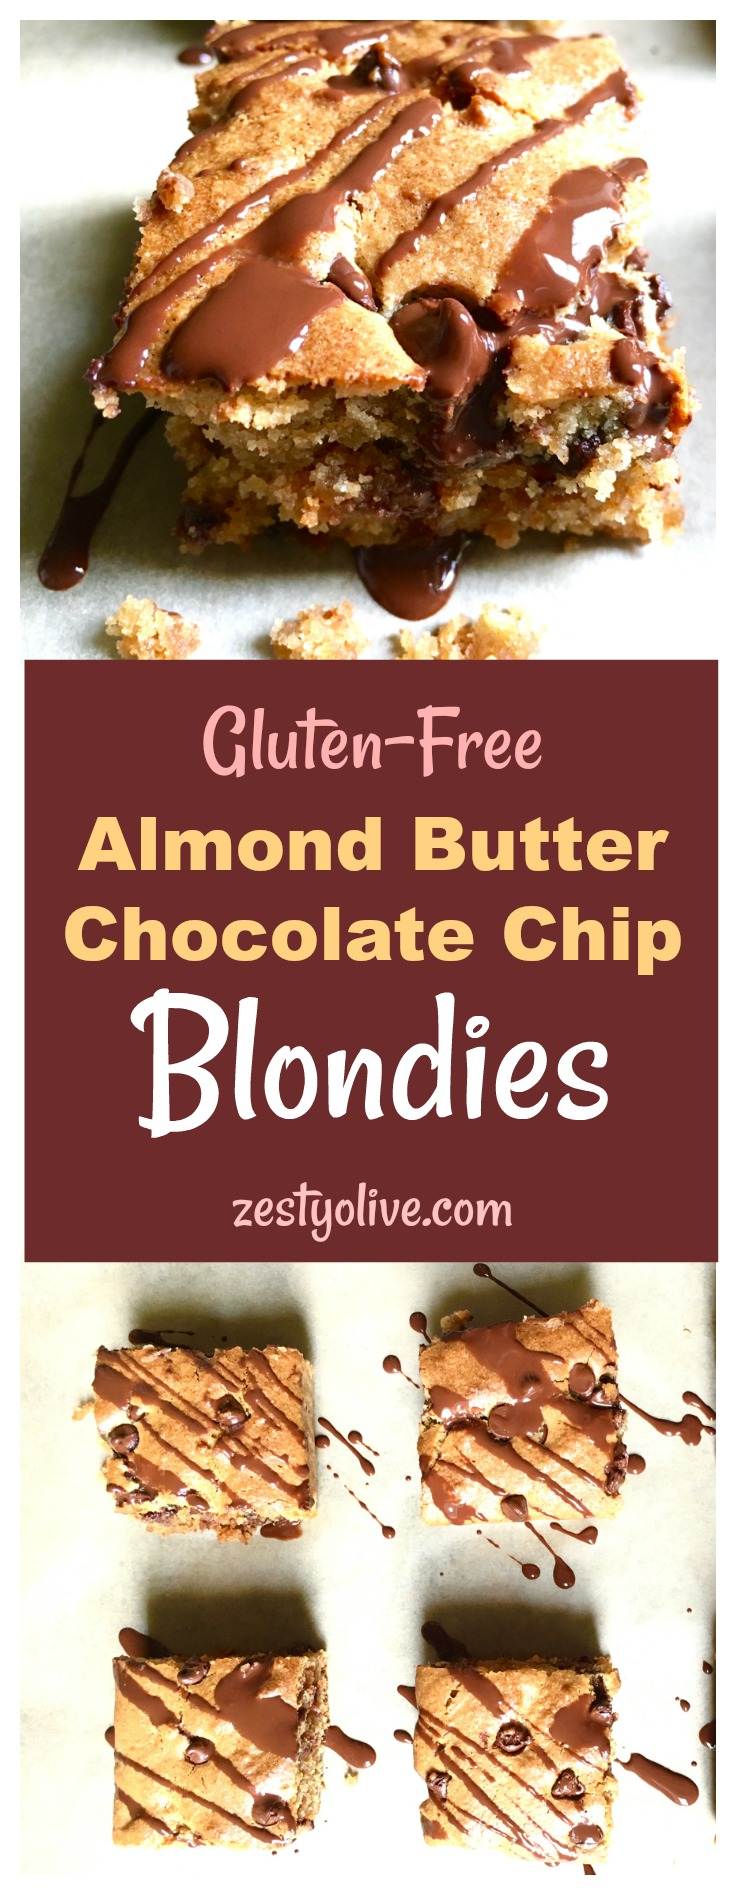 Gluten Free Almond Butter Blondies